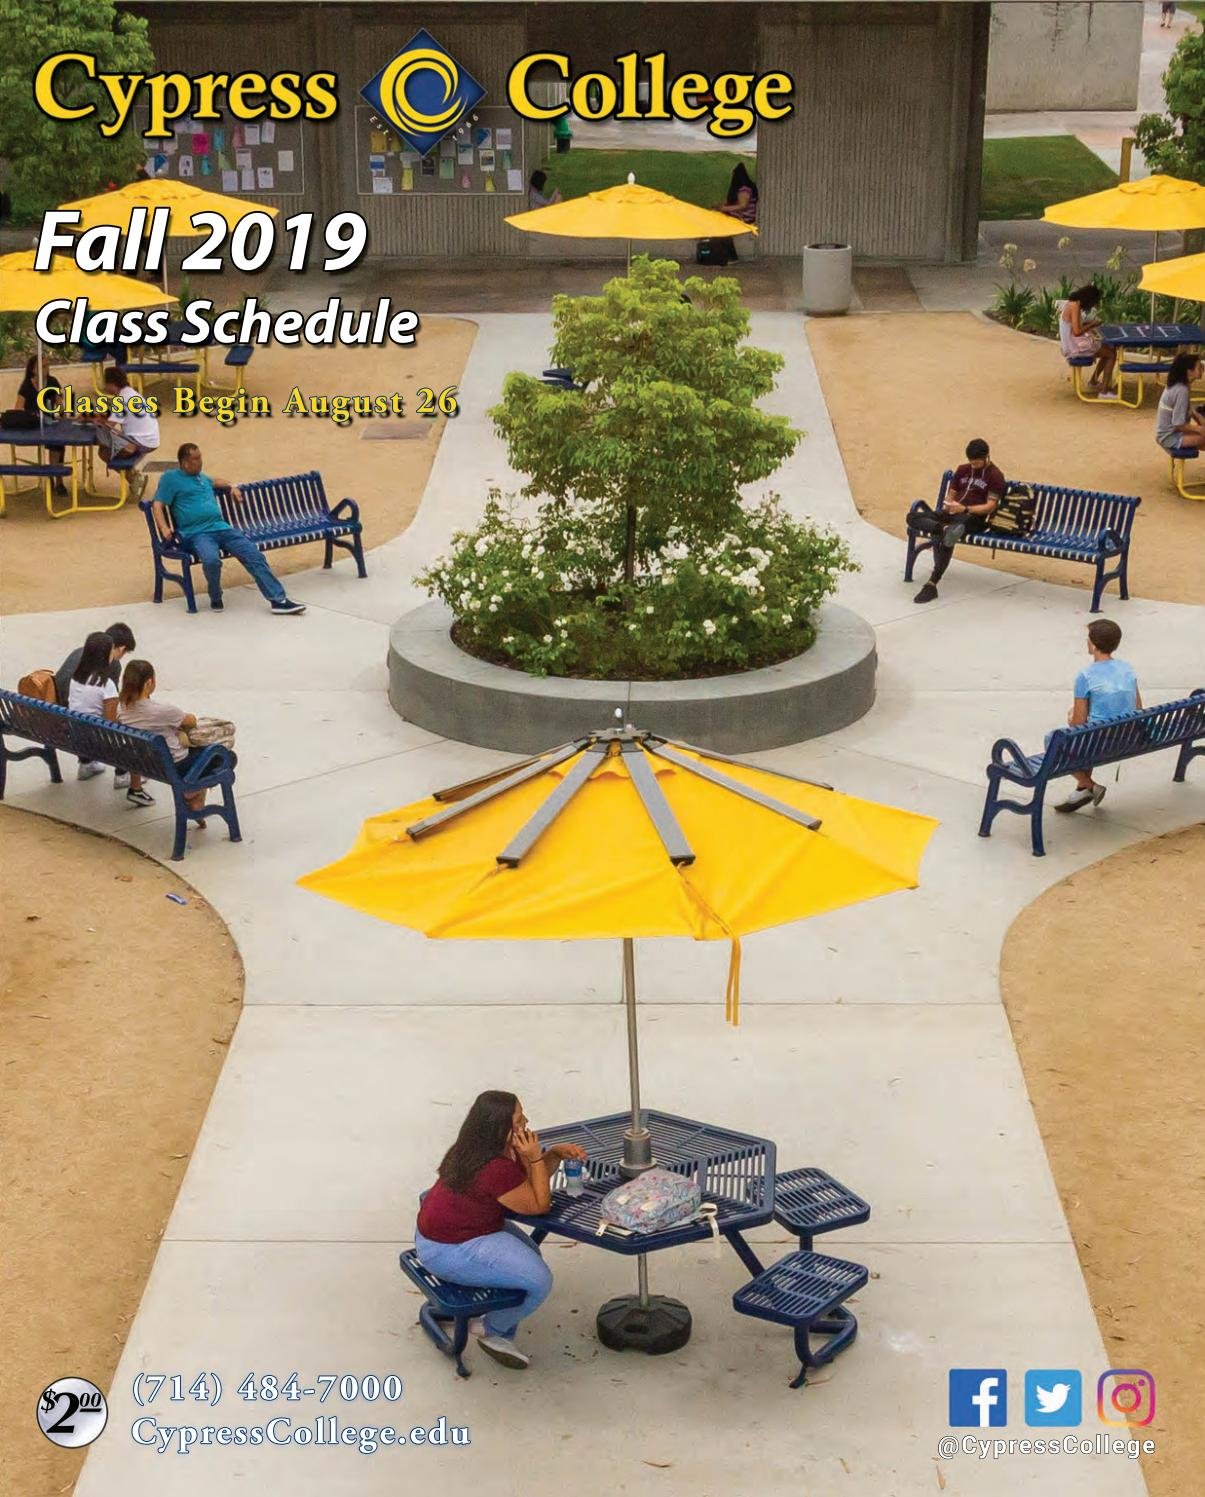 Cypress College Fall 2019 Schedule of Classes by Cypress